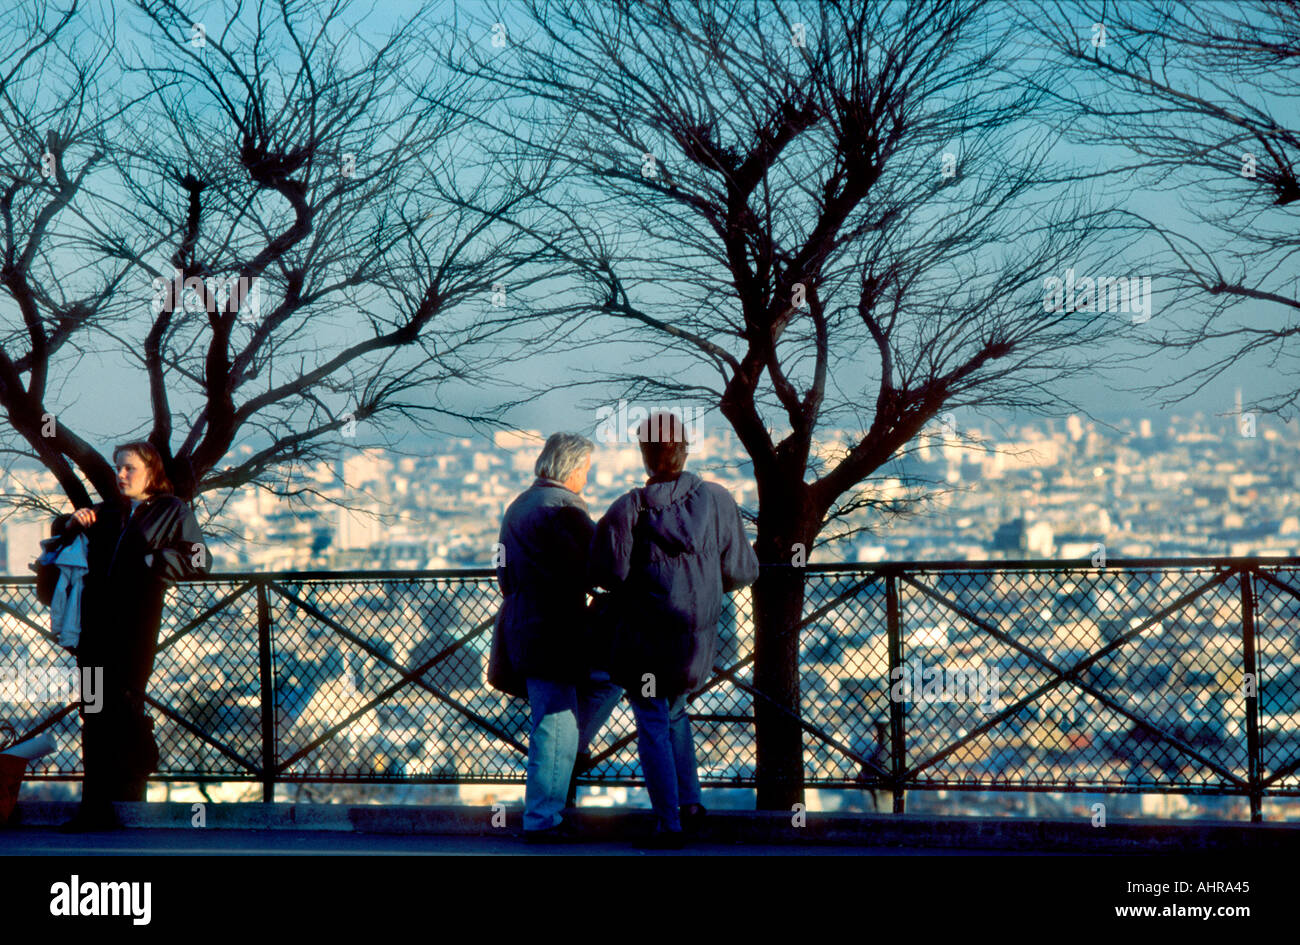 Paris France, Montmartre Skyline View With Couple in Silhouette Looking at Overview city aerial people - Stock Image